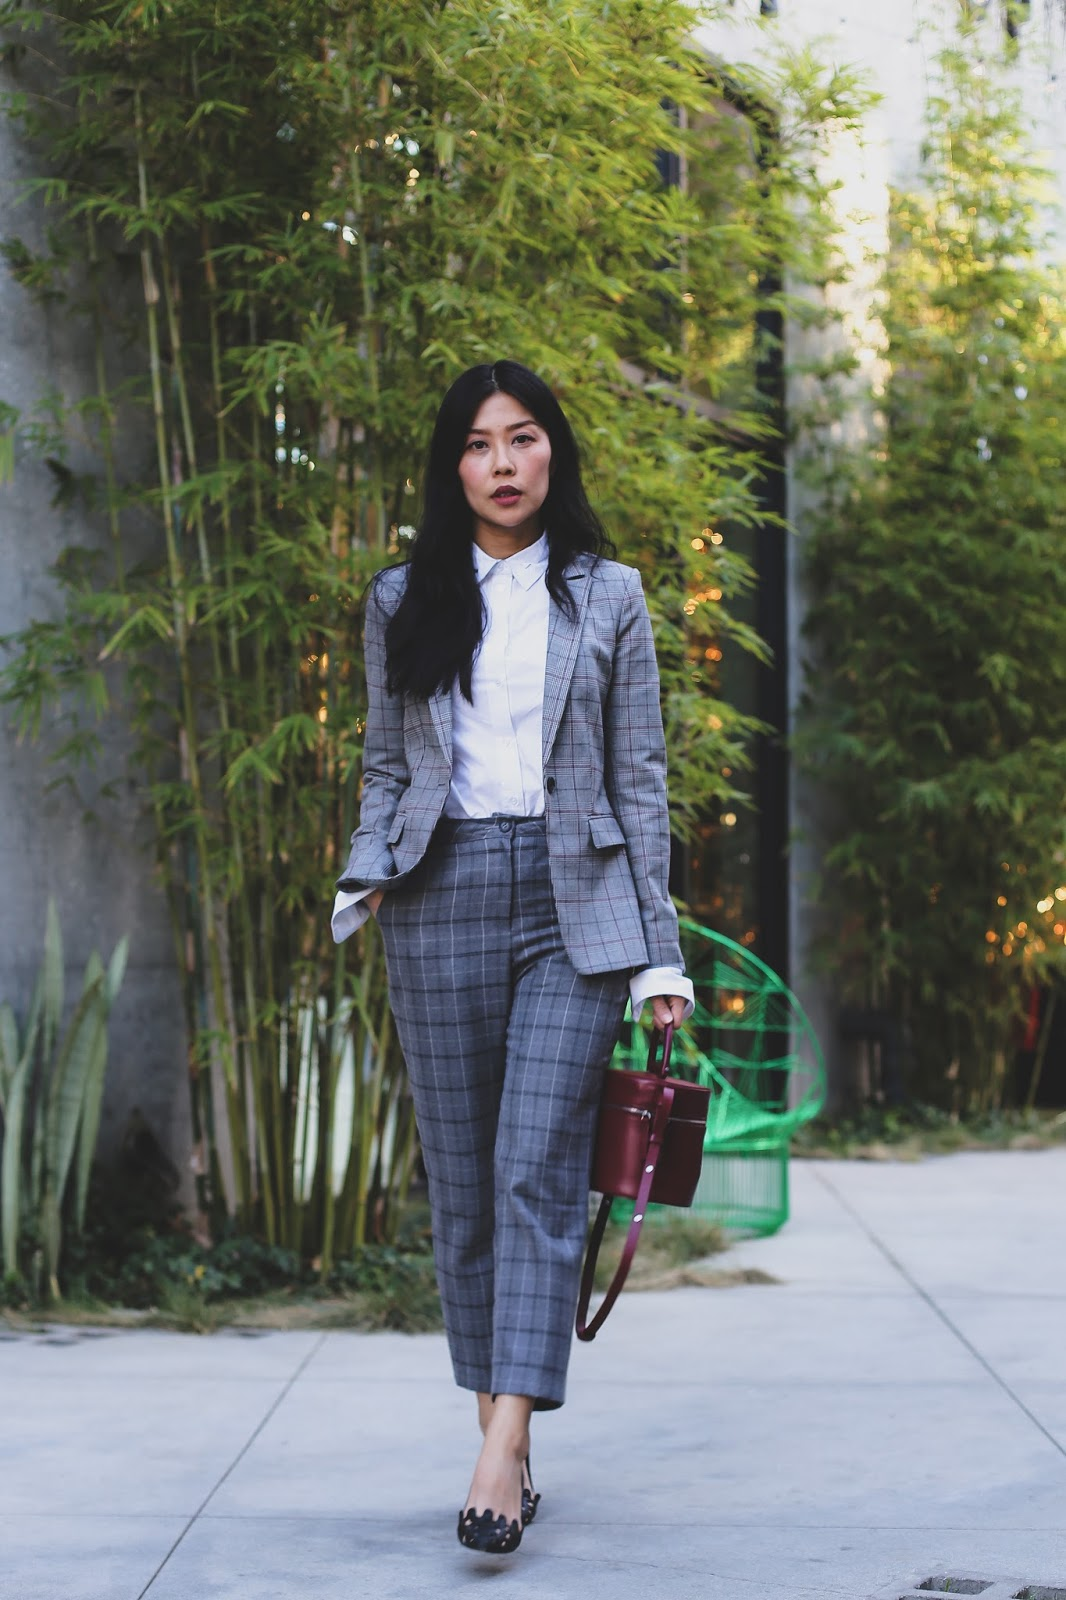 work outfit idea checkered pant suit